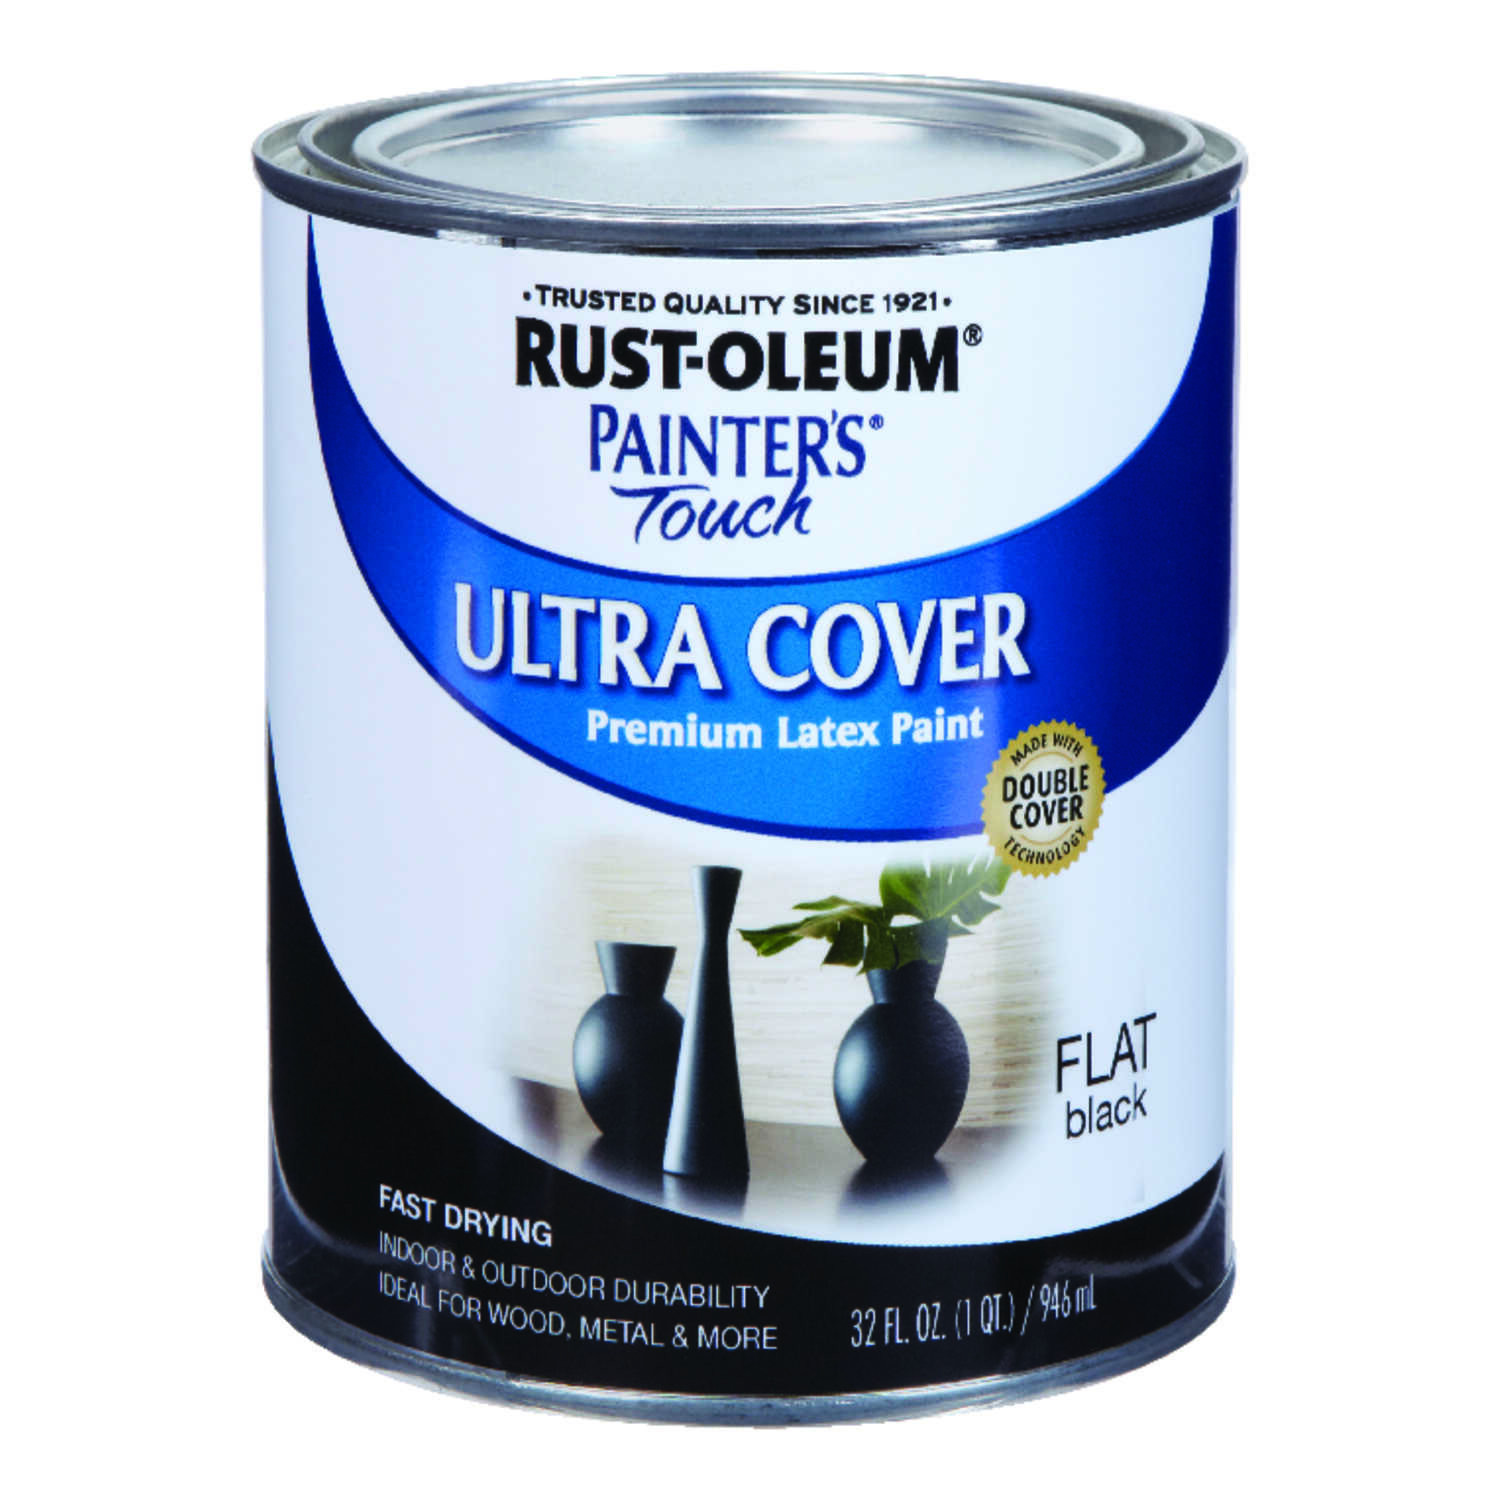 Rust-Oleum  Painters Touch Ultra Cover  Indoor and Outdoor  Flat  Black  Latex  Paint  1 qt.